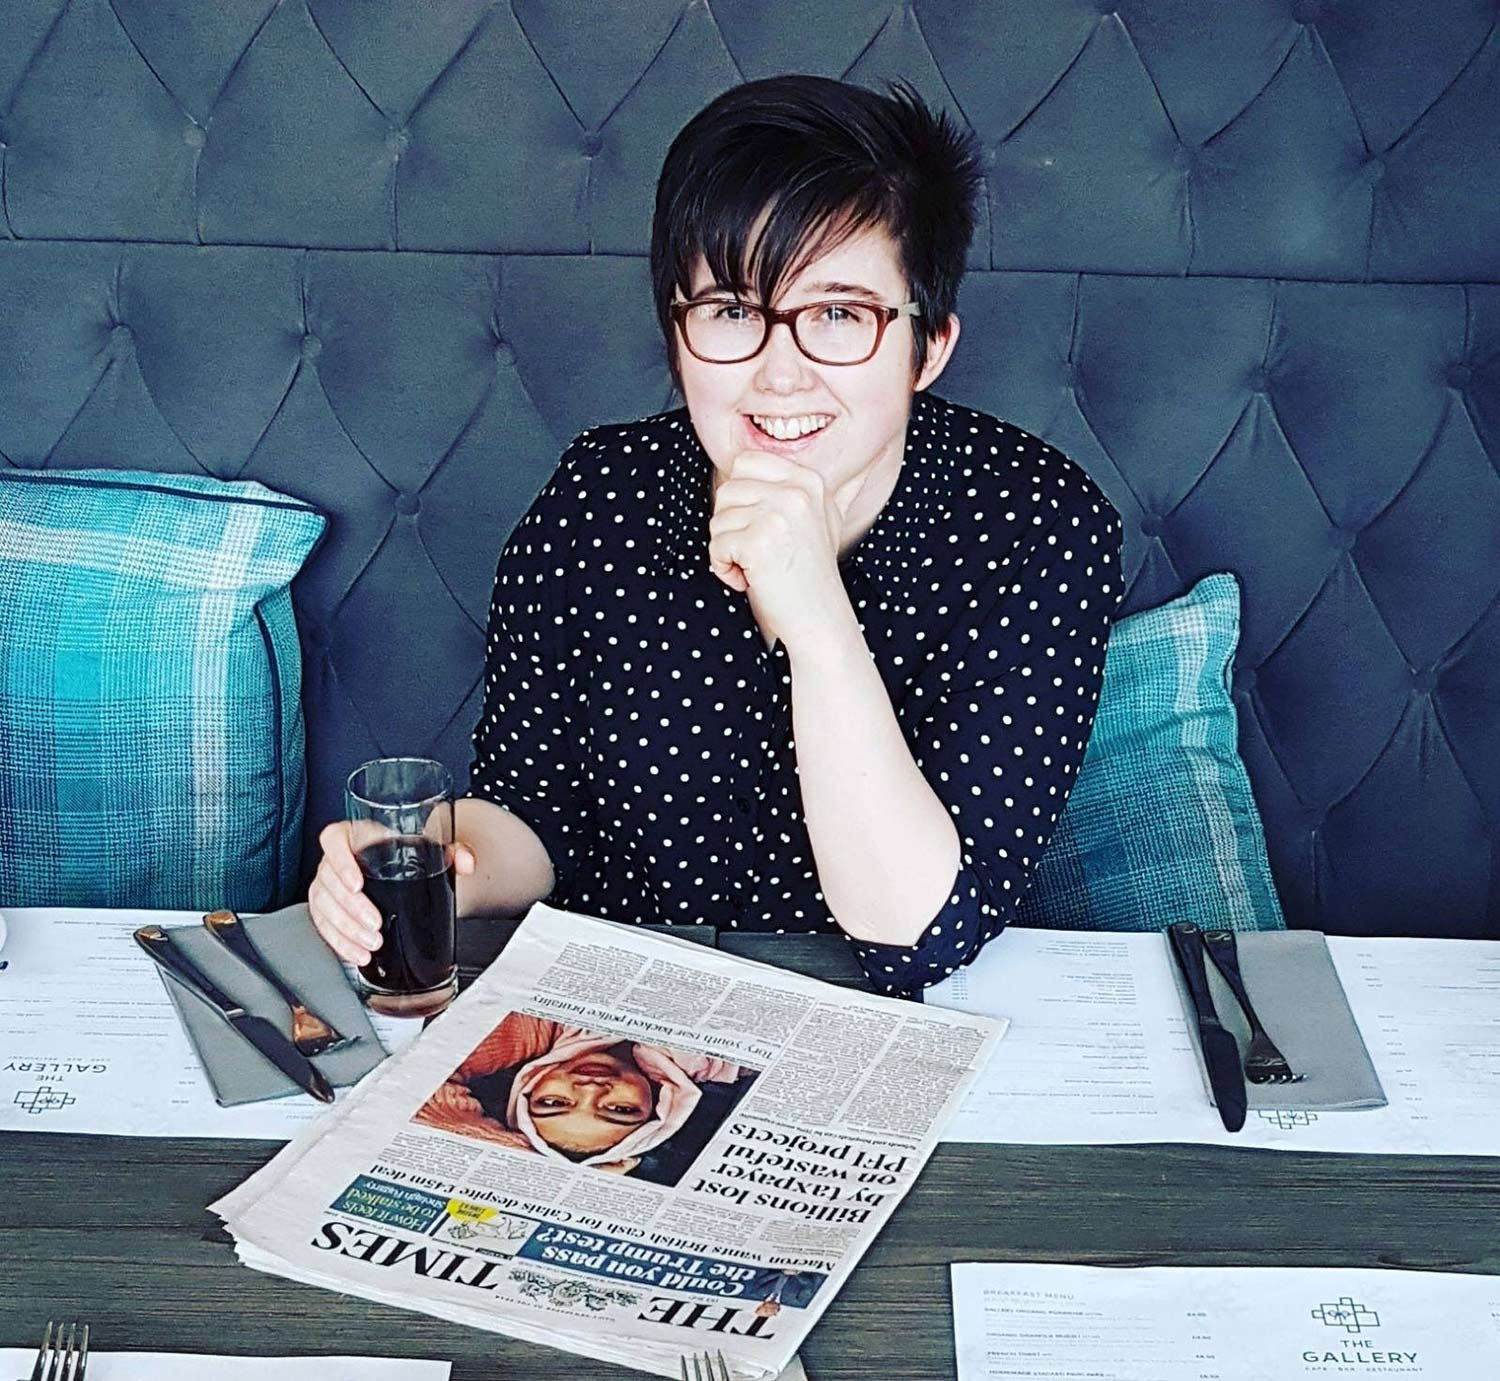 Journalist Lyra McKee who was shot and killed by Republican dissidents in Derry.